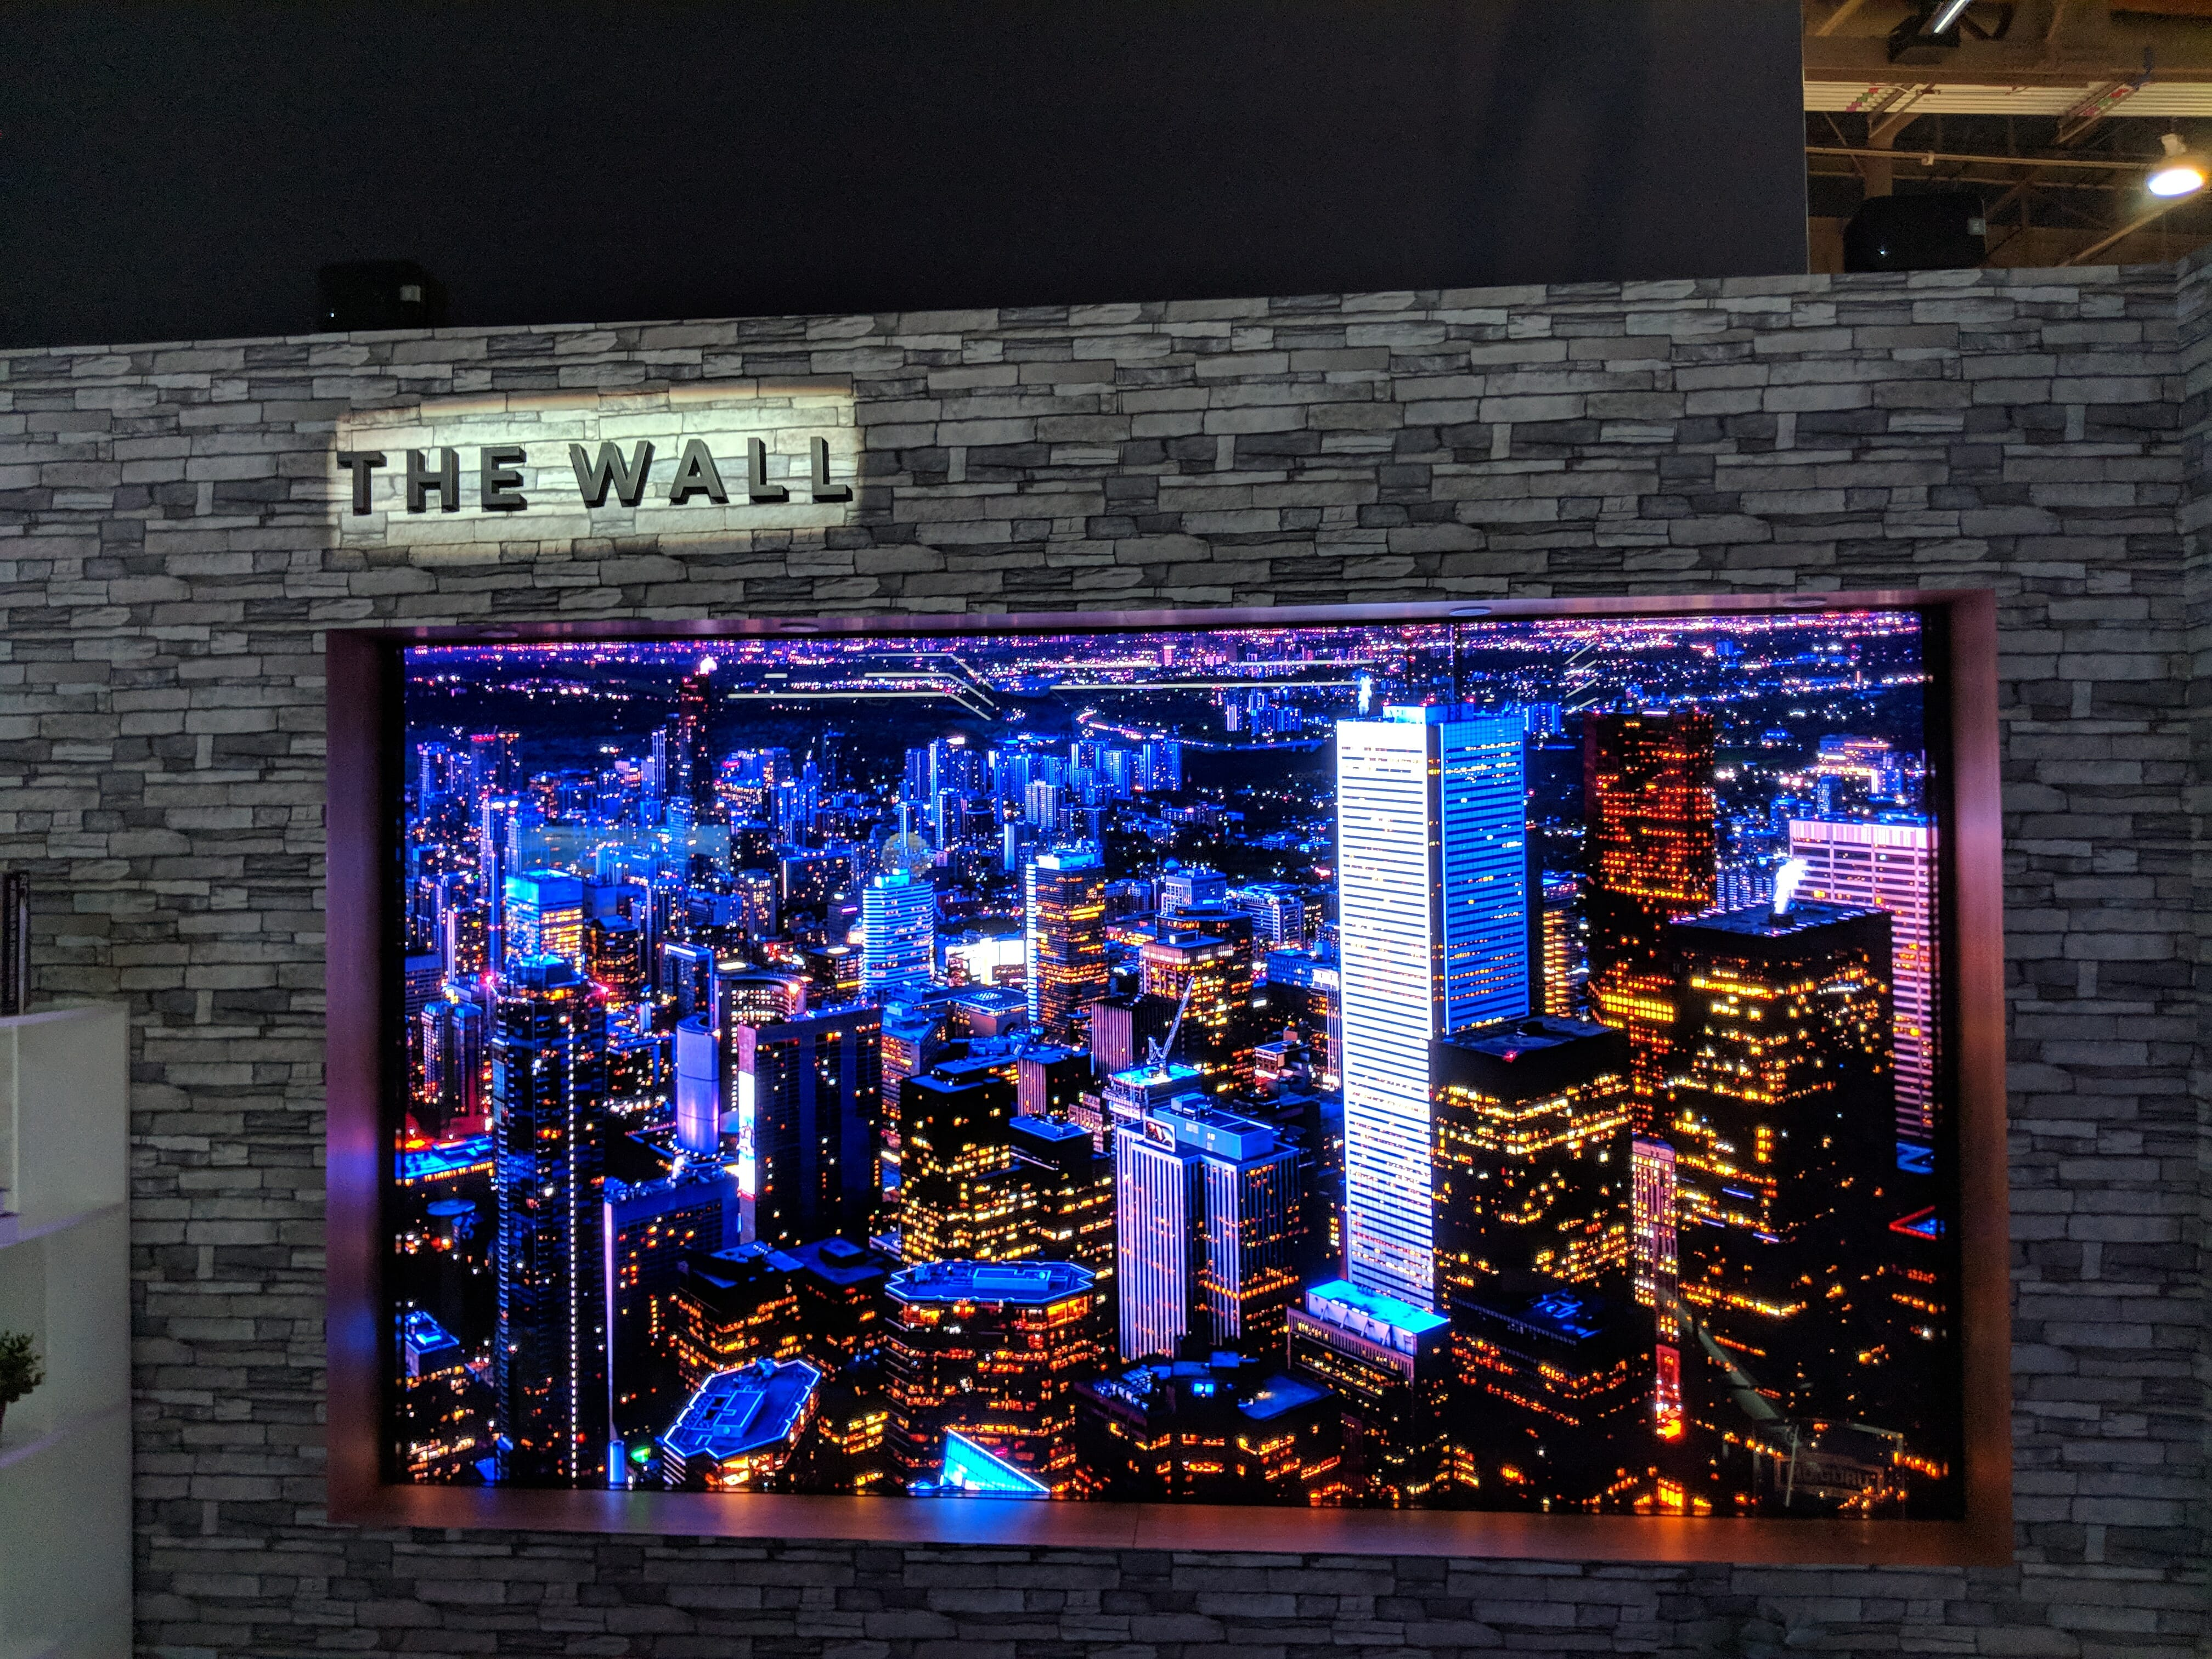 Samsung's 146-inch 'The Wall' TV Display Is a Gorgeous Gimmick